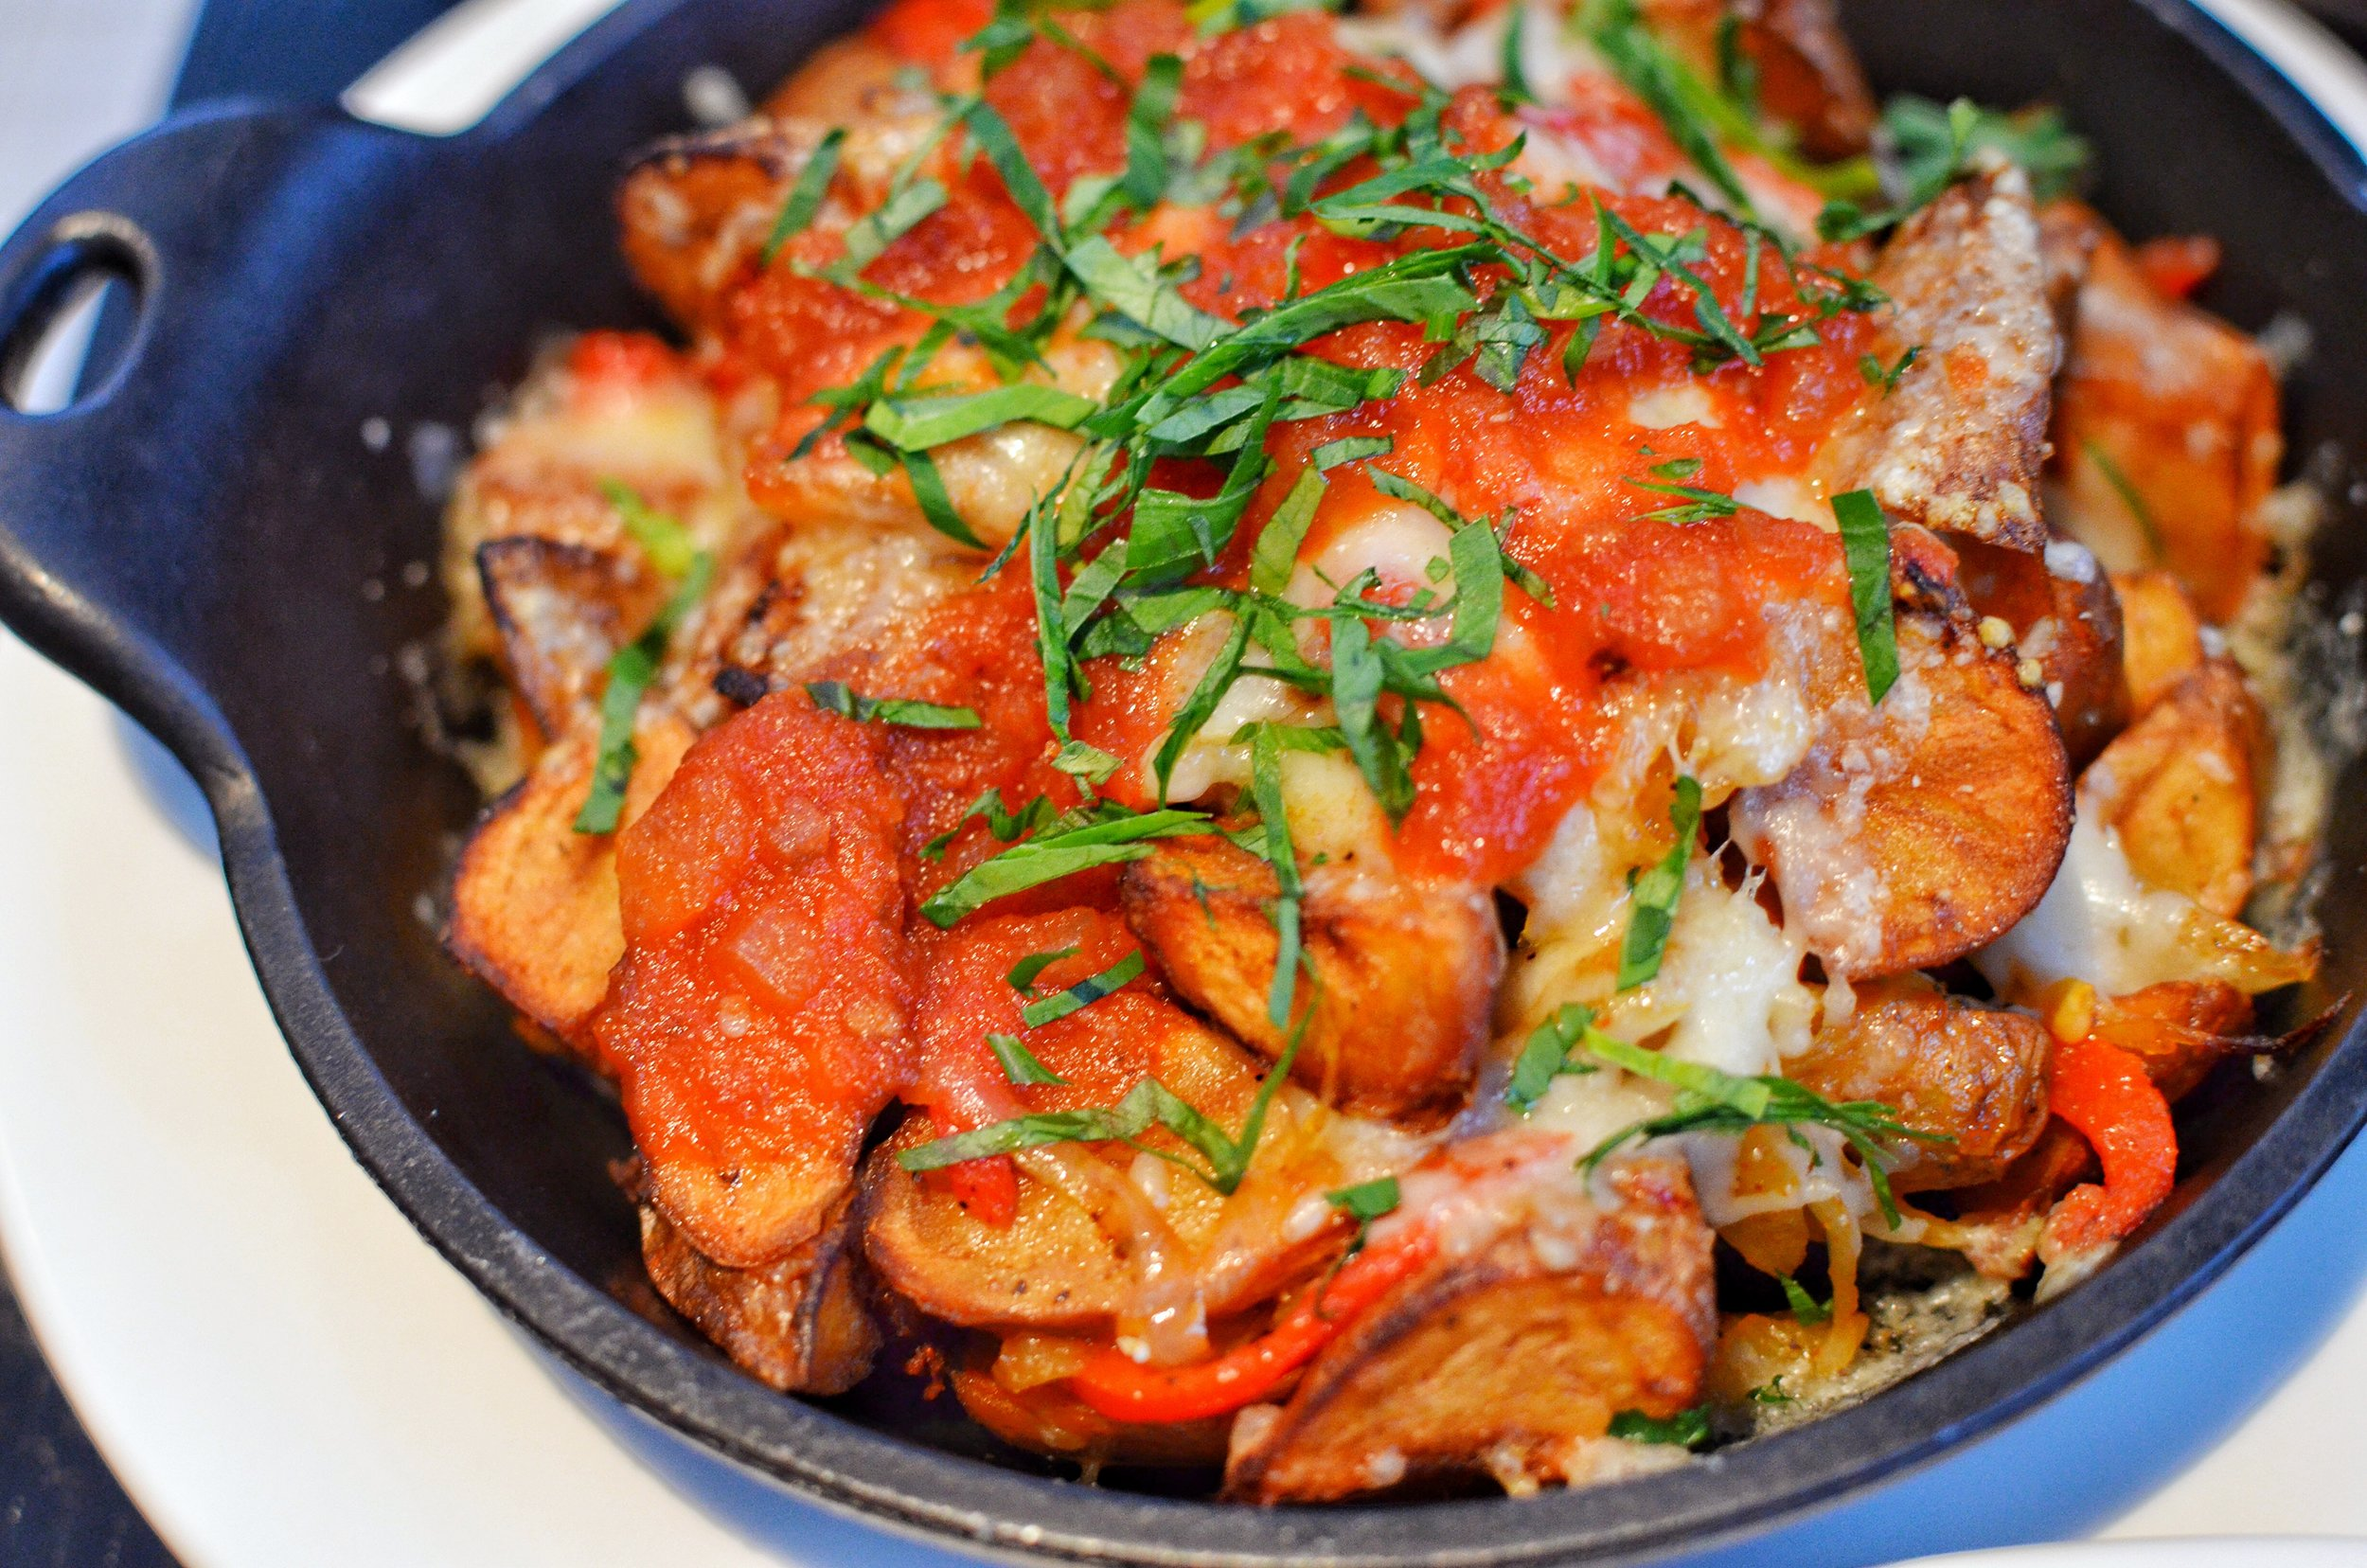 Potato hash with roasted bell peppers and cheese